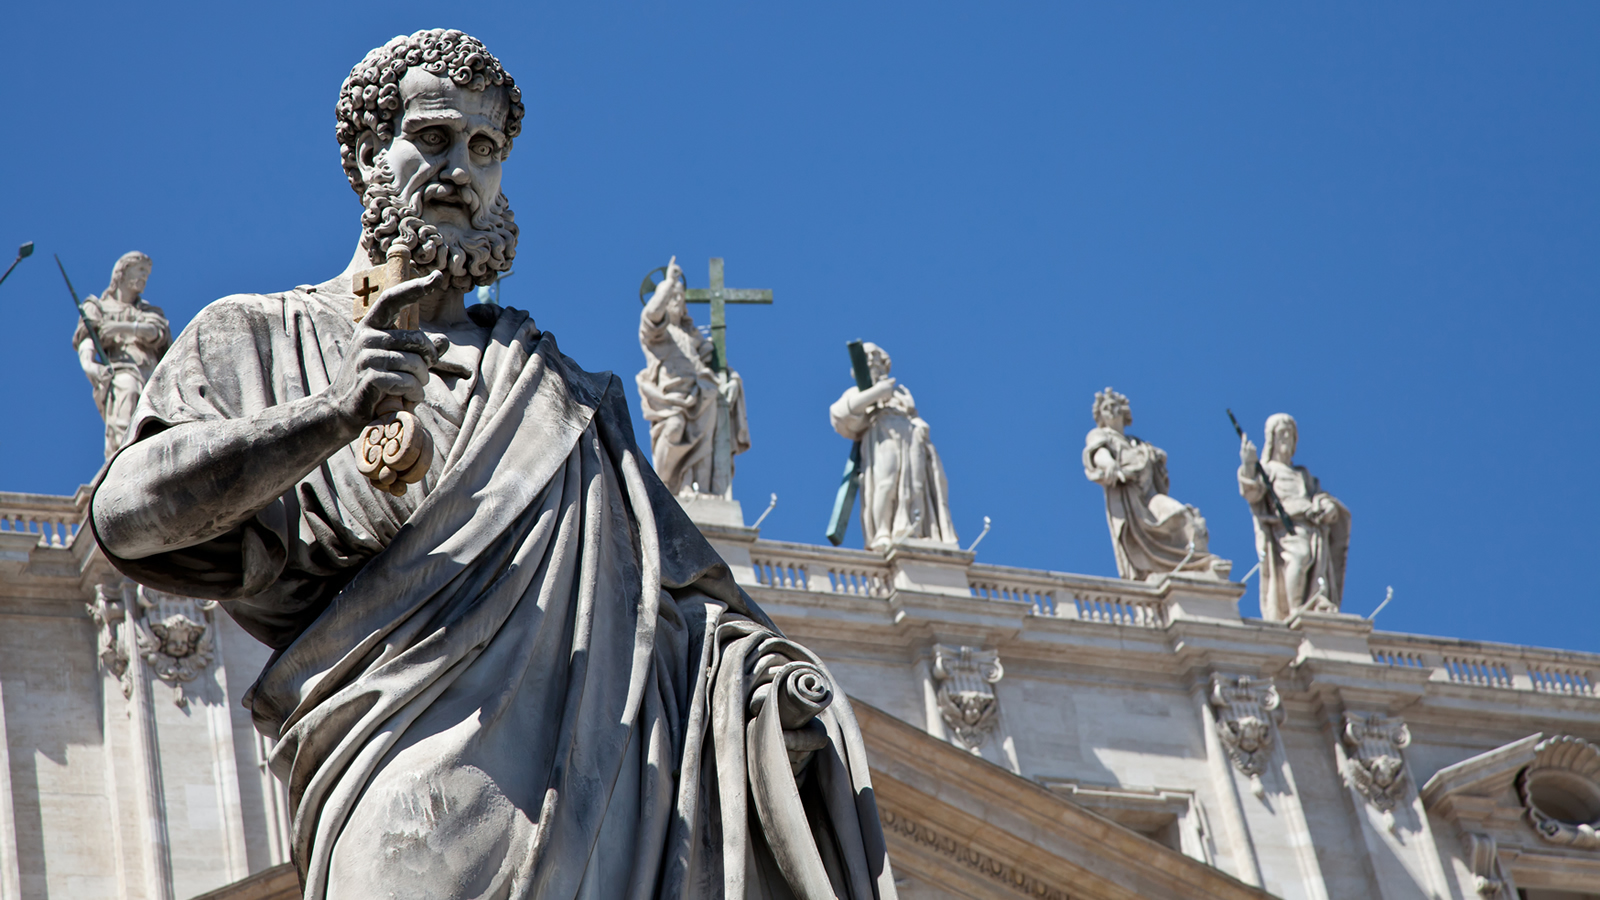 Statue of St. Peter with Key of Heaven at the Vatican